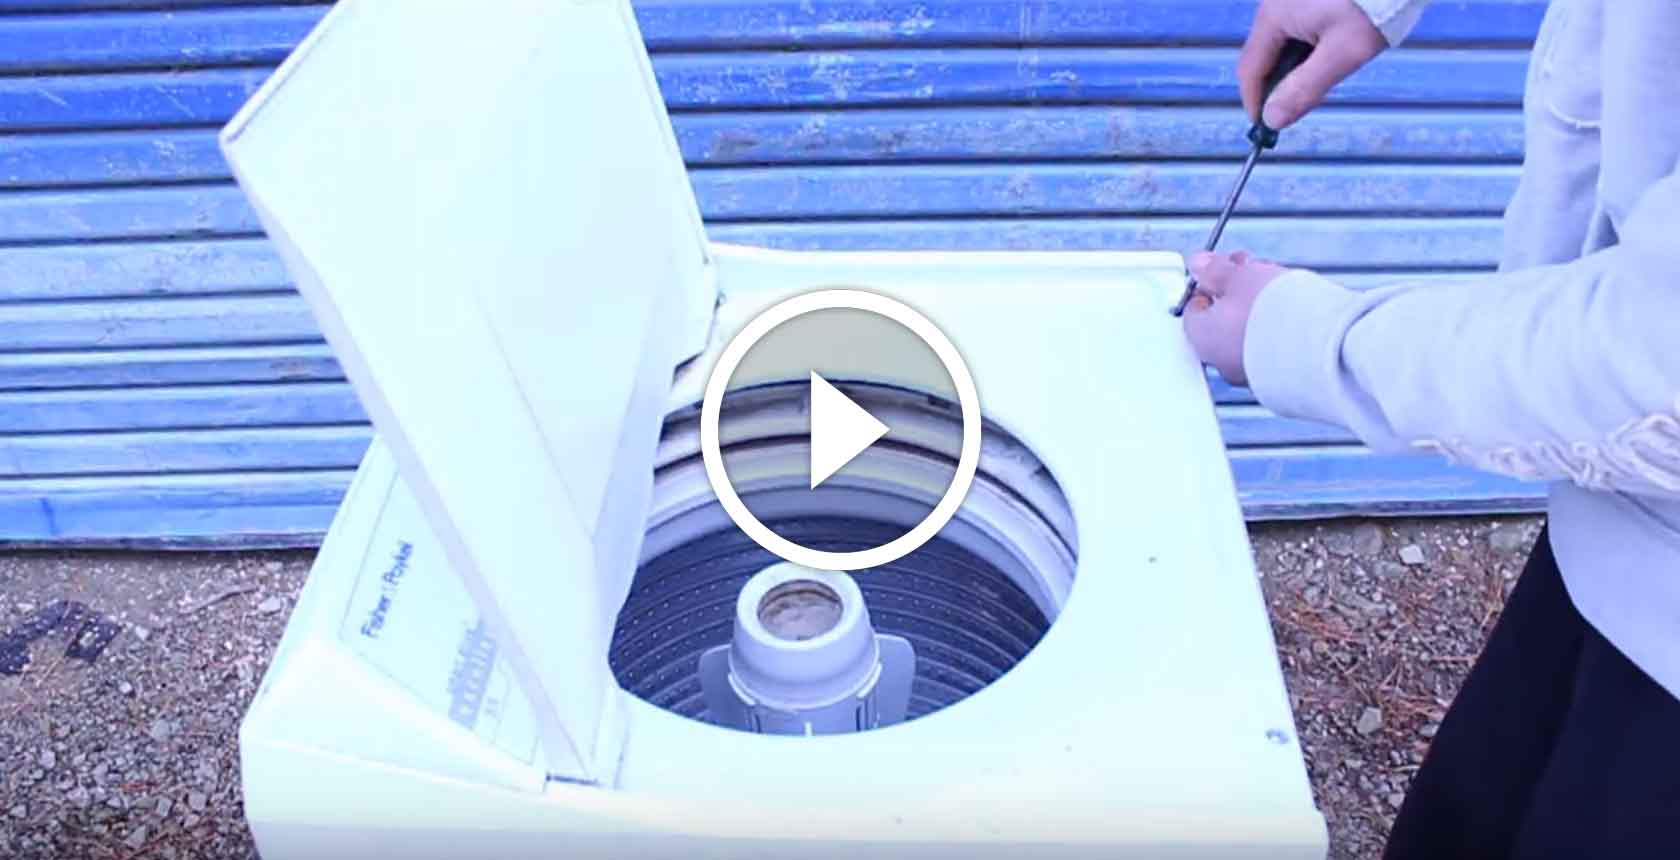 washing machine converter